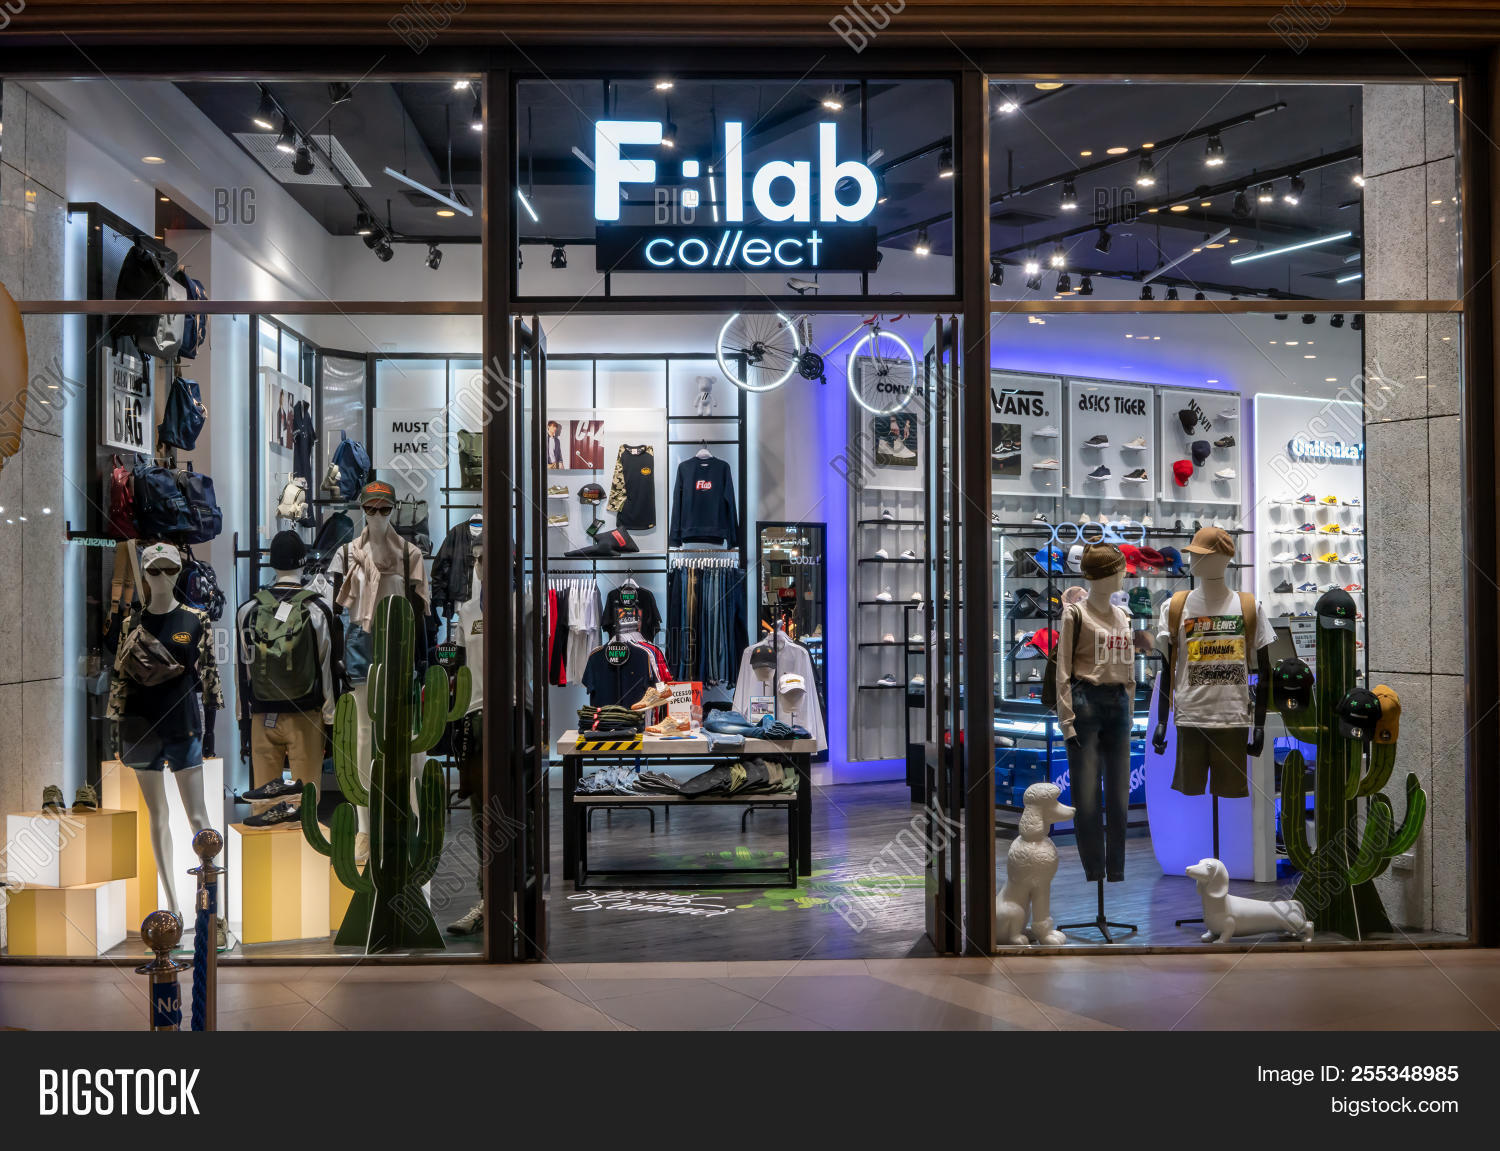 0ffd2745ab F : lab collect shop at Terminal 21, Bangkok, Thailand, May 7, 2018 :  Multi-lifestyle fashion store for clothing and accessories.